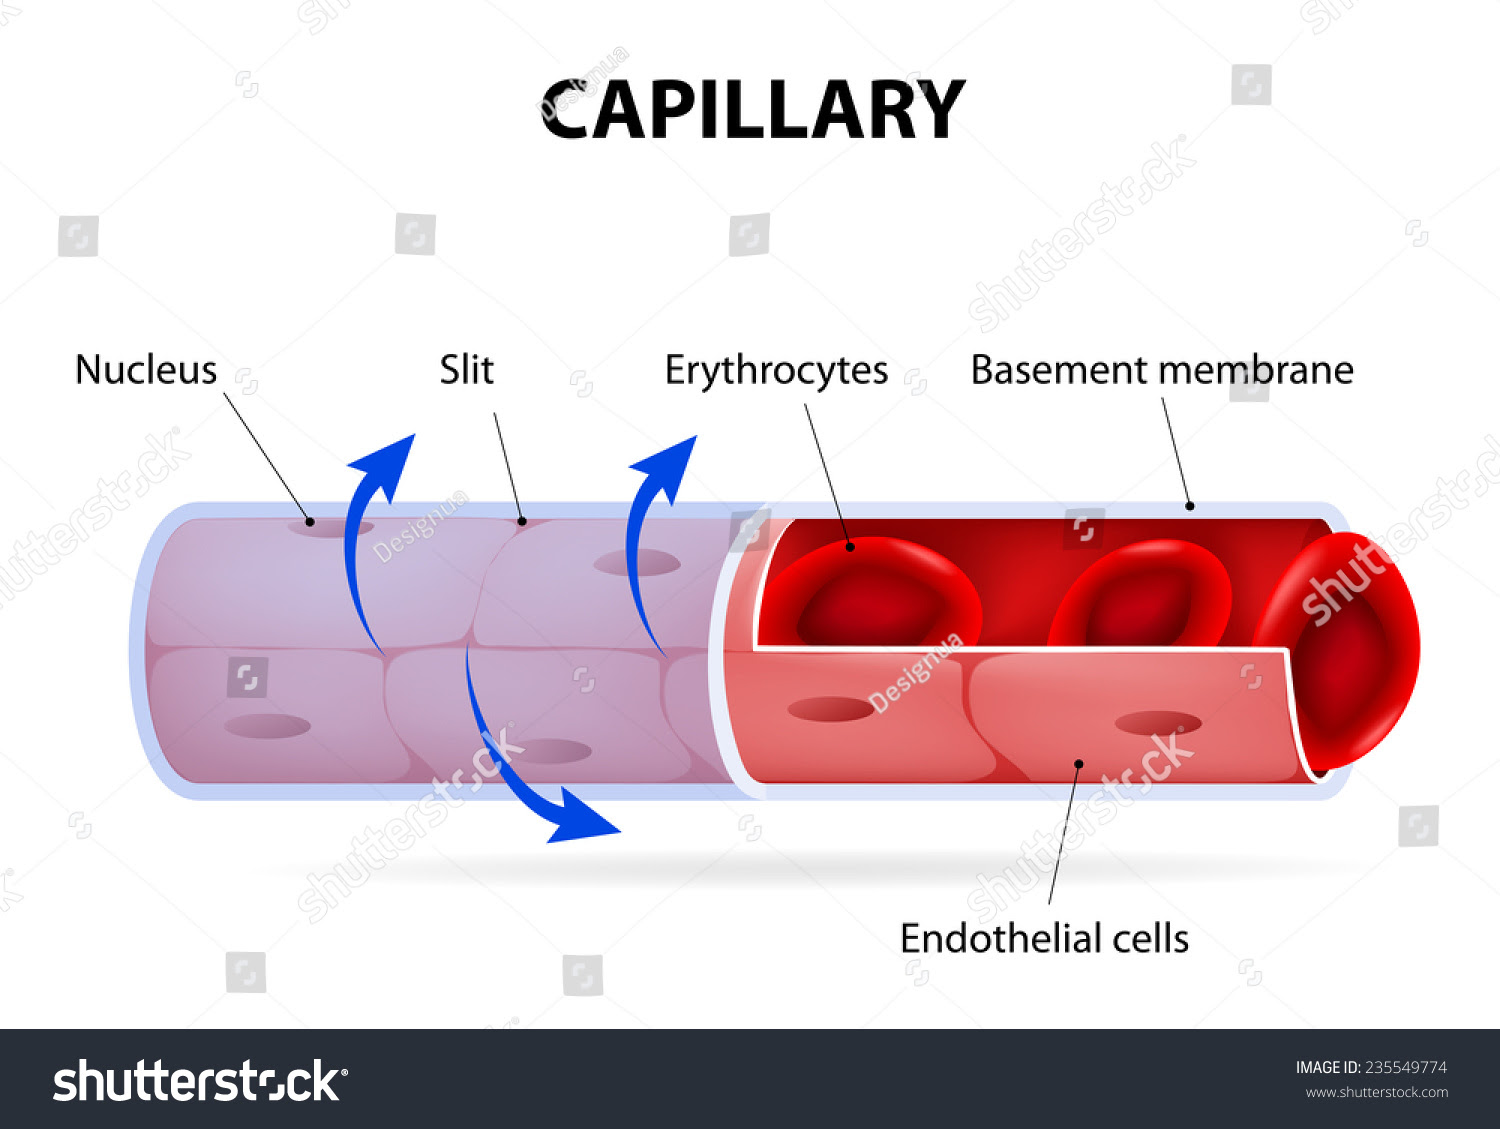 Capillary Blood Vessel Labelled Vector Diagram Stock ...